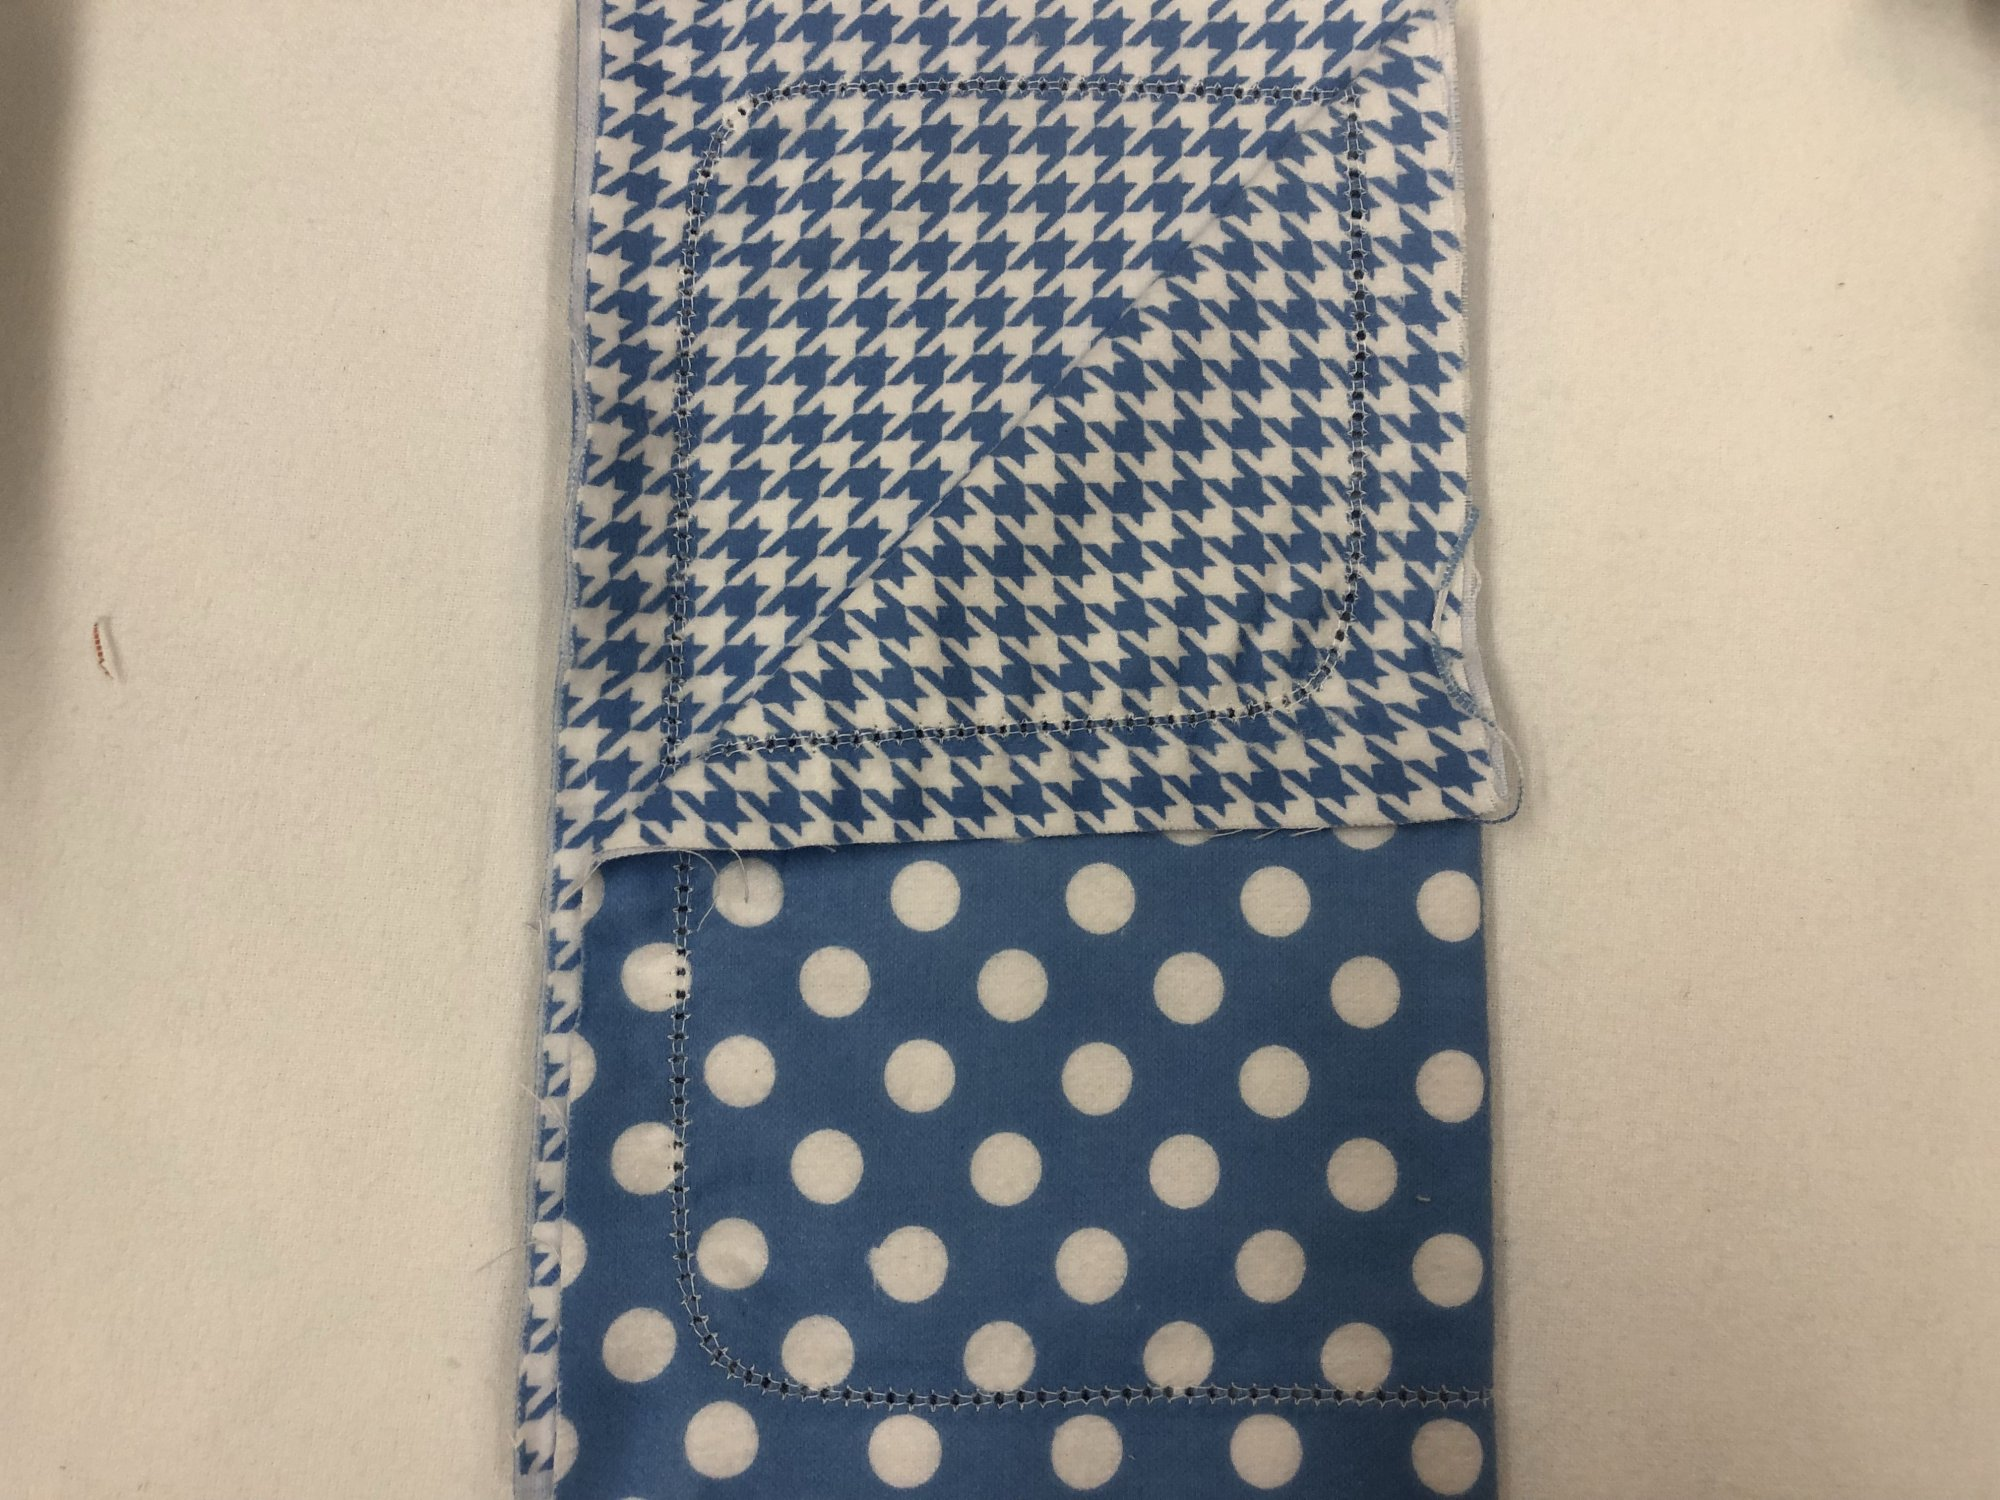 White dots on blue background/Blue and white houndstooth burp